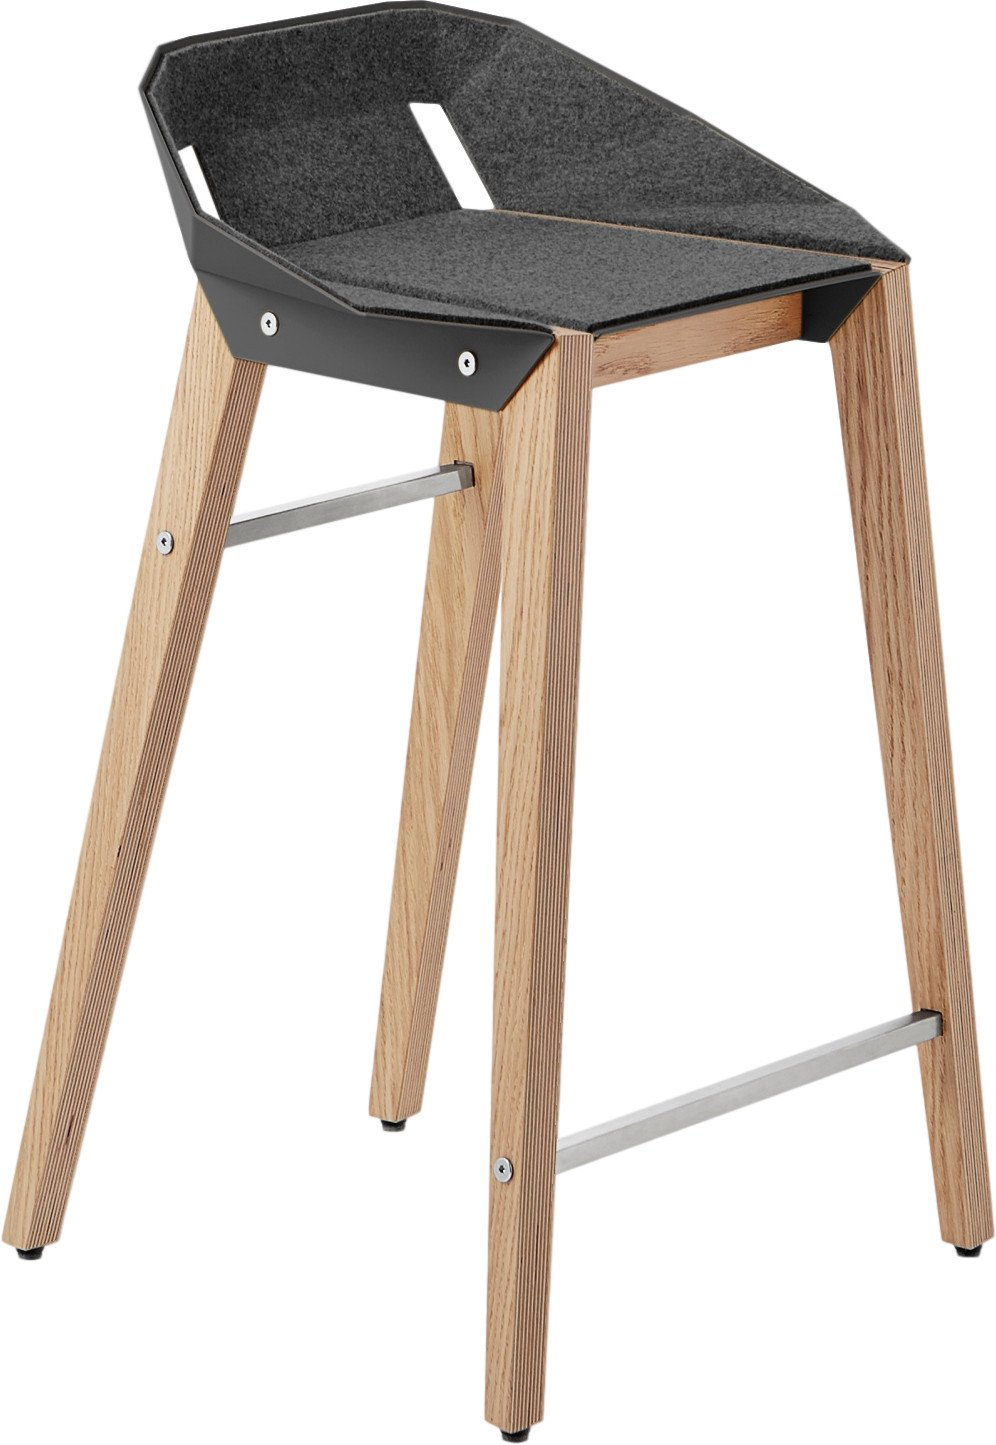 Diago Felt Stool Low Dark Grey, Tabanda, Poland